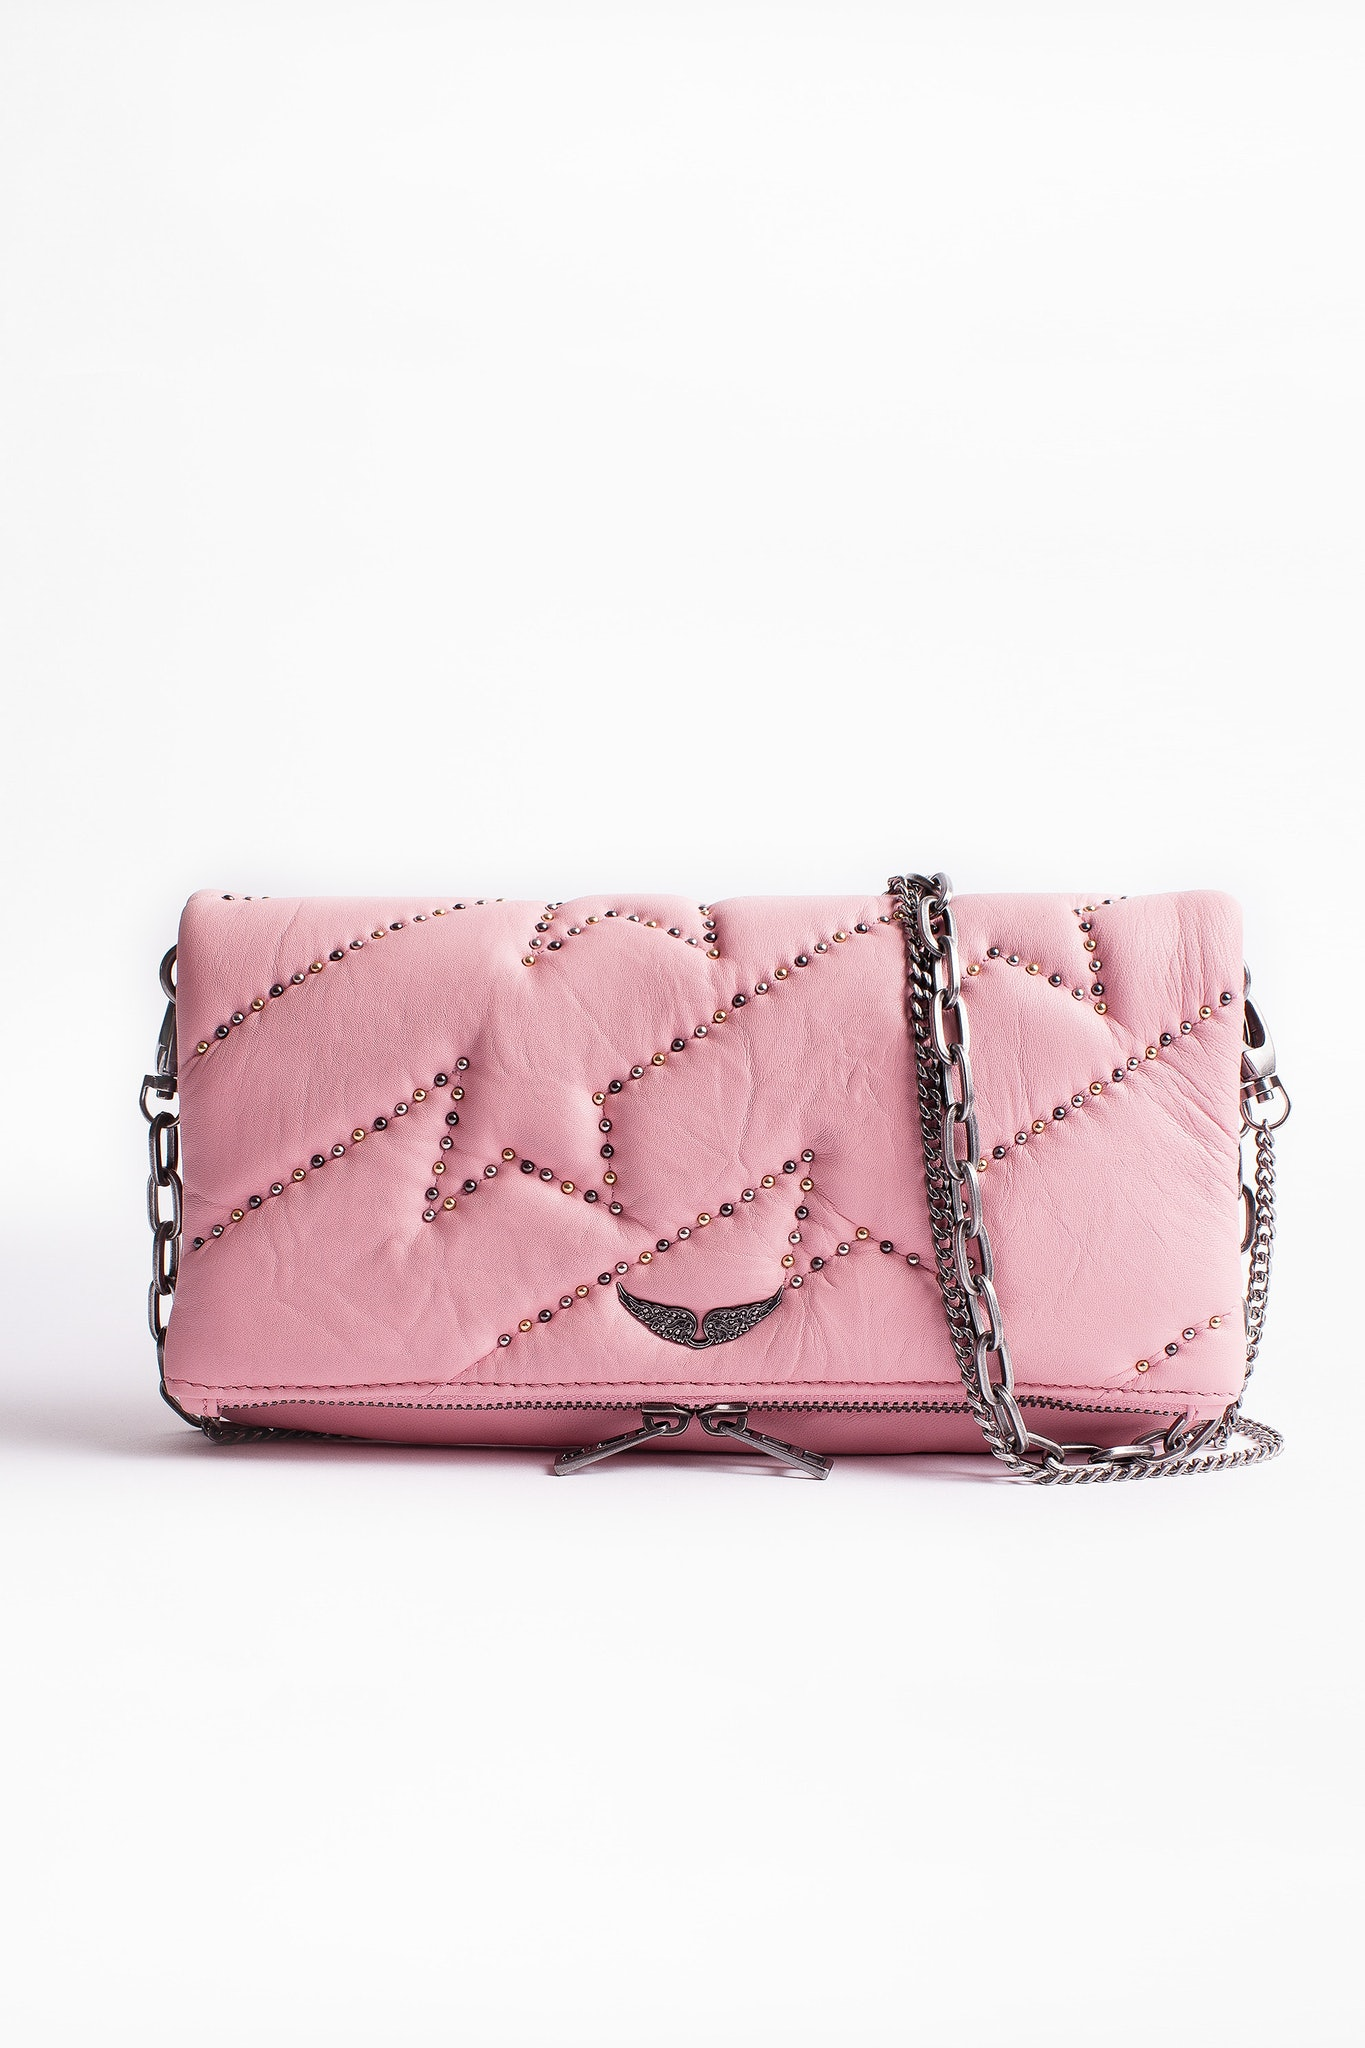 Rock ZV clutch bag